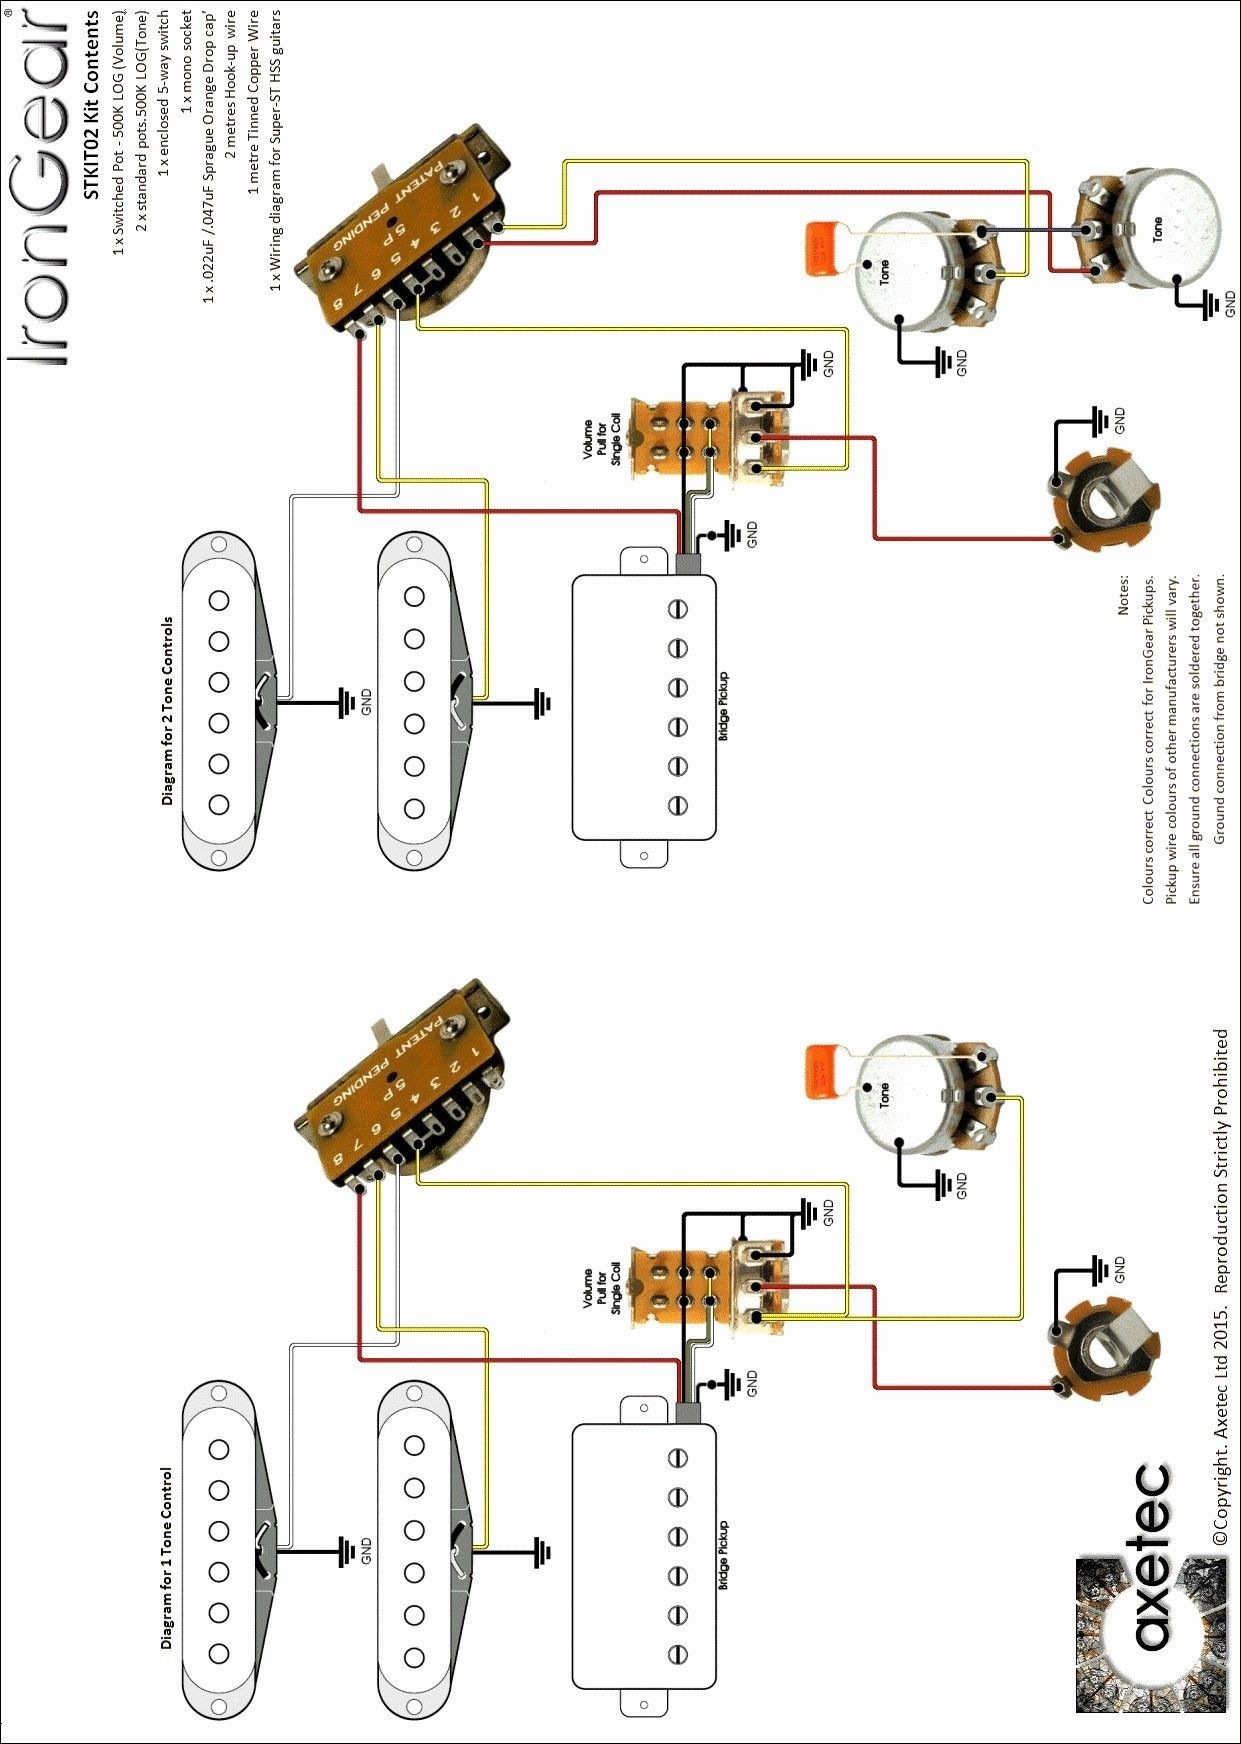 medium resolution of 2 humbuckers 1 volume 1 tone 3 way switch inspirational fine guitar with regard to guitar wiring diagram 2 humbucker 1 volume 1 tone